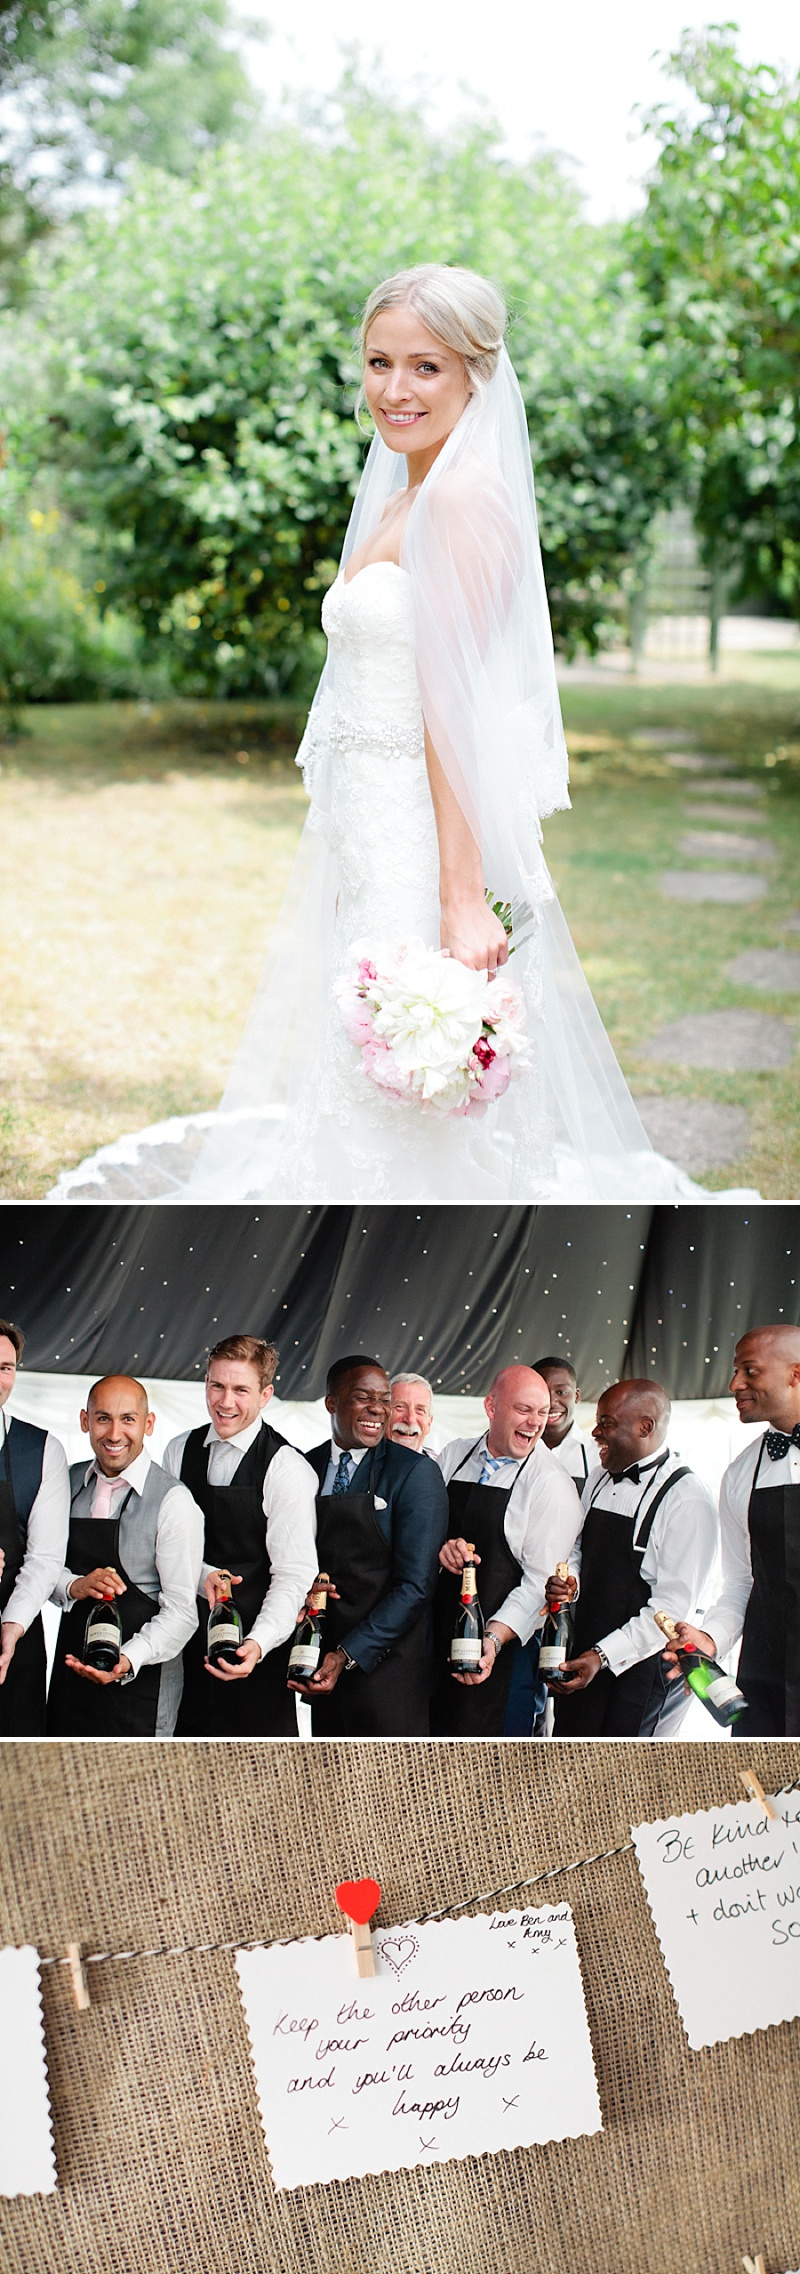 Elegant Church Wedding In Cambridge, Reception At Rectory Farm, Bride In Lace Gown by Benjamin Roberts with Pink Peony Bouquet, Traditional Nigerian Dress, Images by Millie & Belle_0012